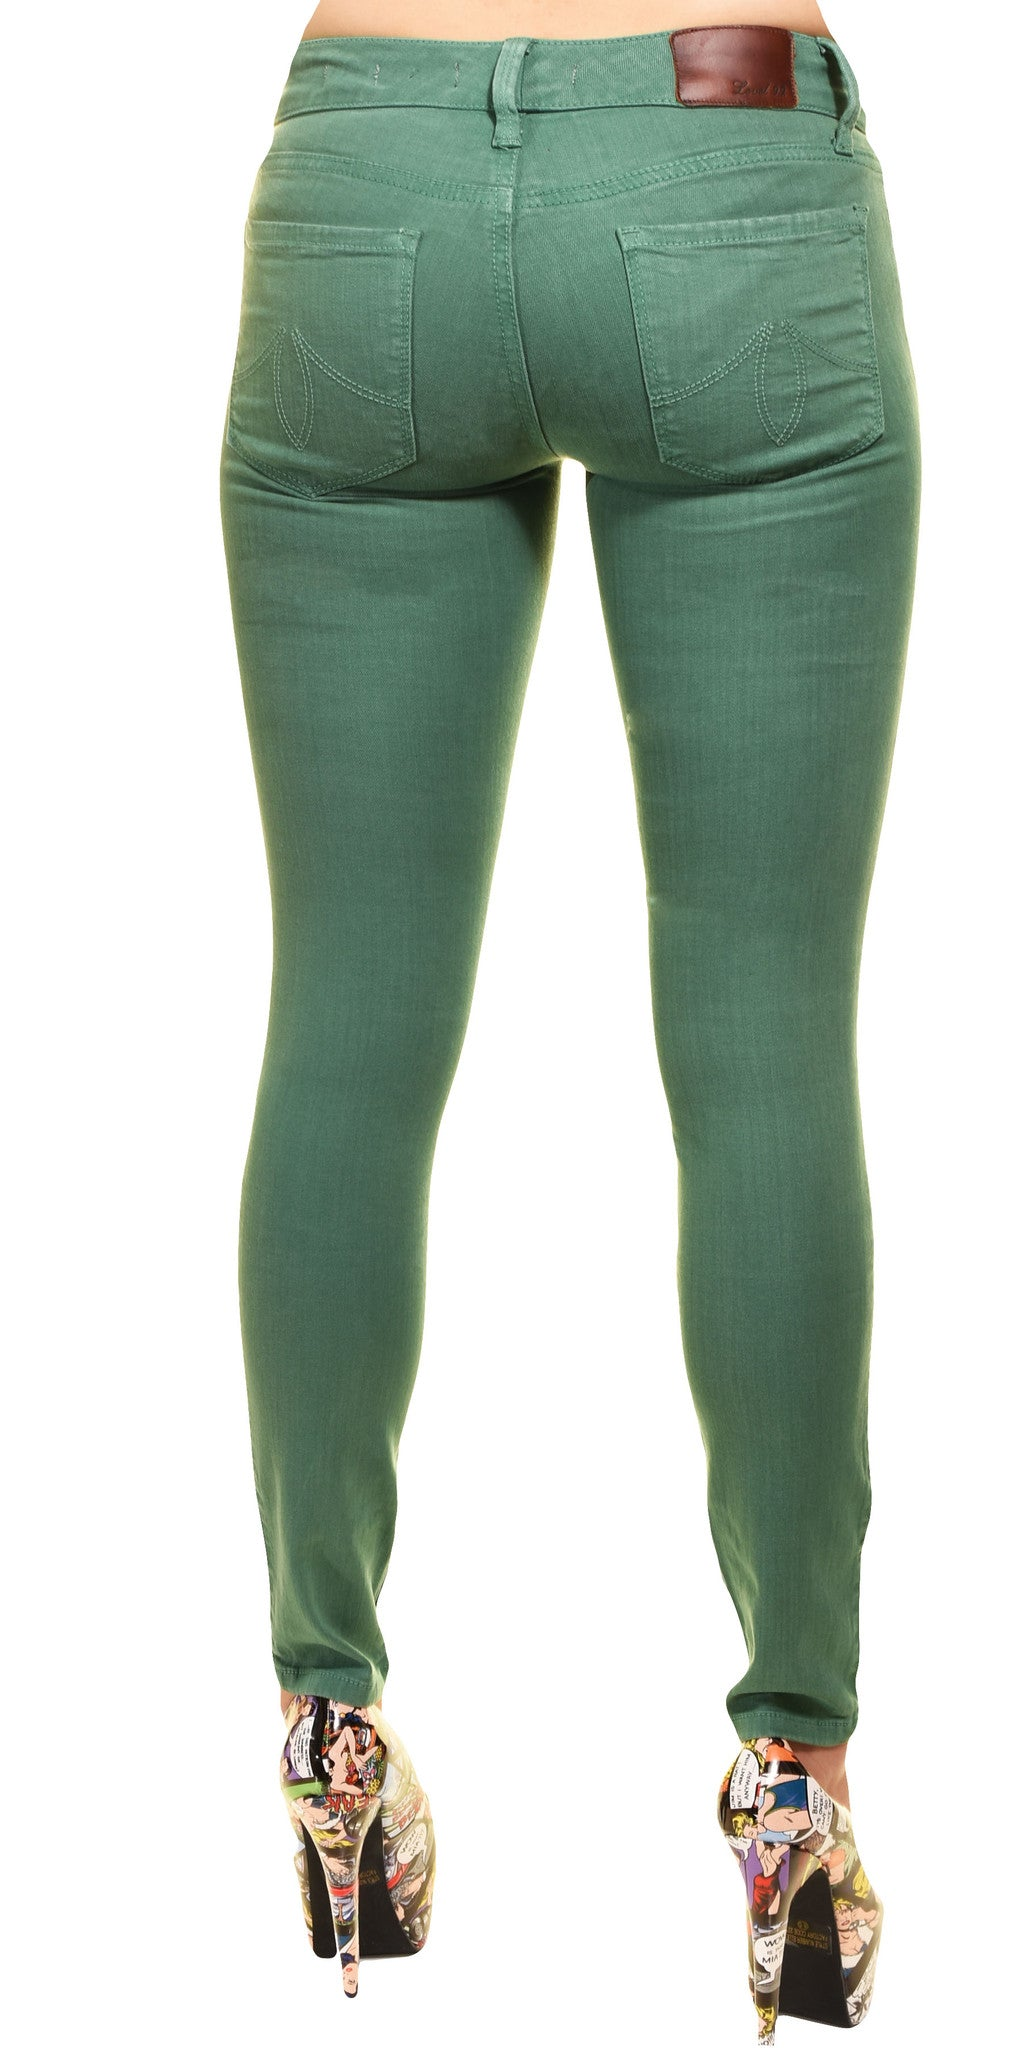 Level 99 Womens Janice Ultra Skinny Jeans (Green),Jeans,Level 99 - Discount Divas